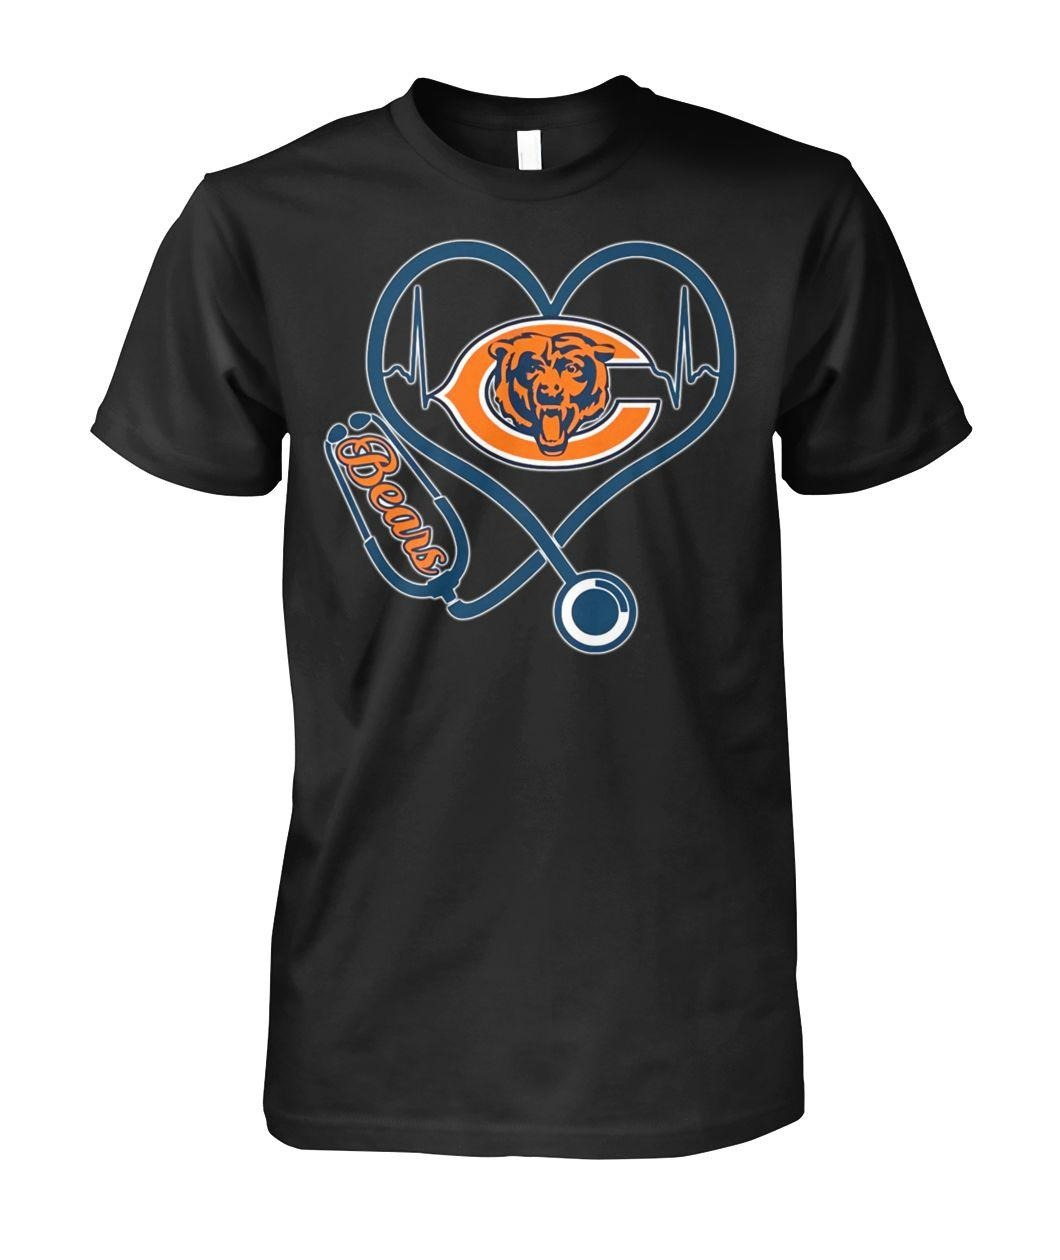 Nurse heartbeat Chicago Bears shirt